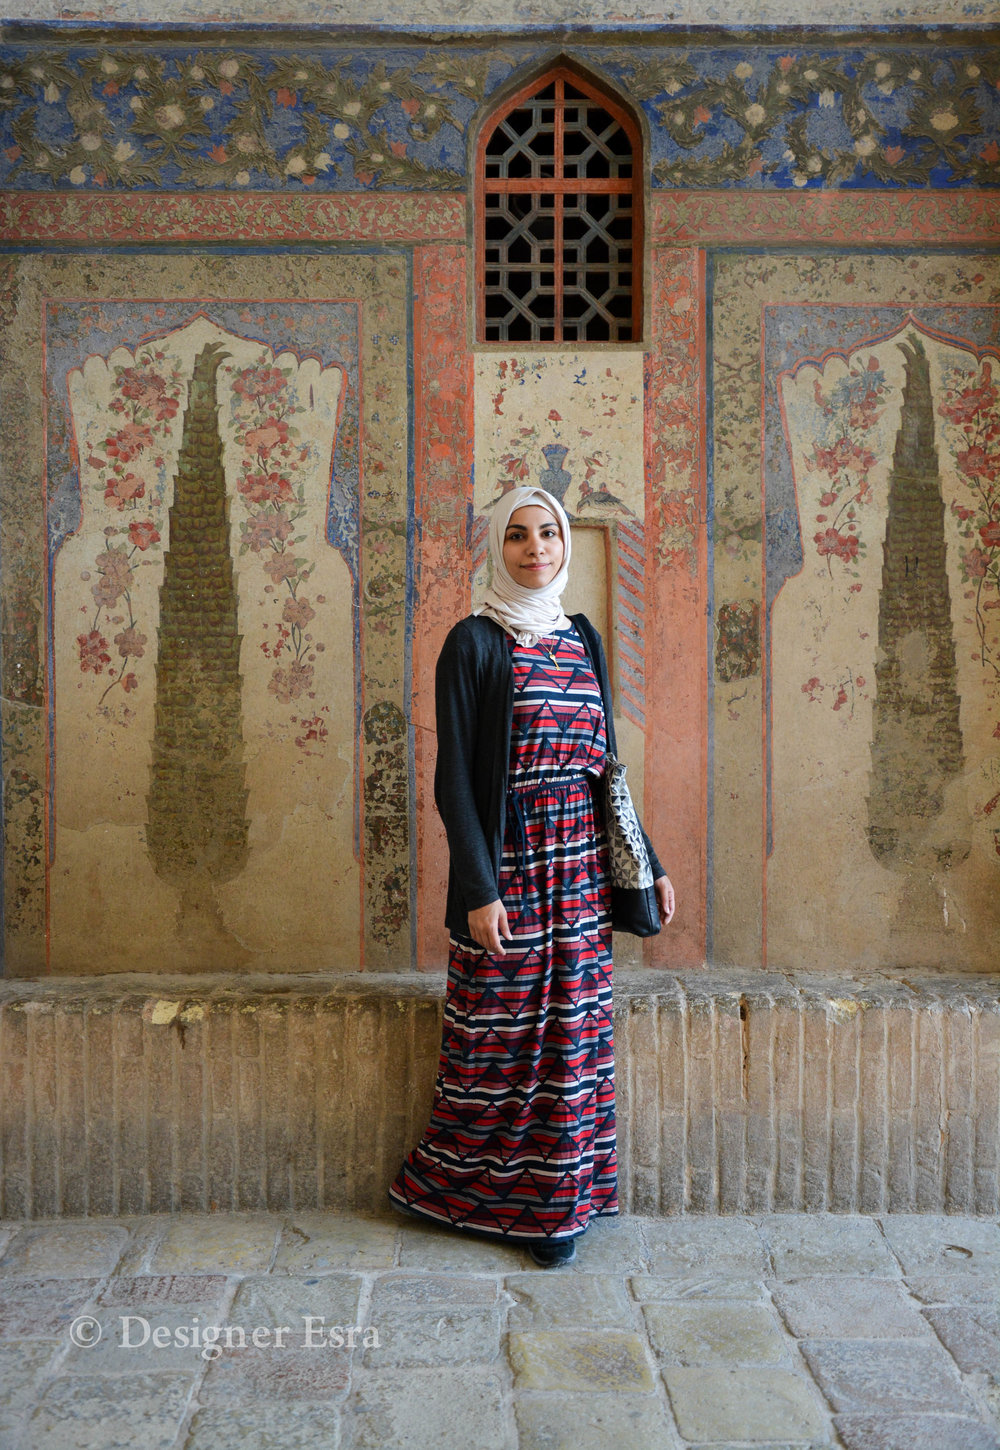 Wearing Dresses in Iran